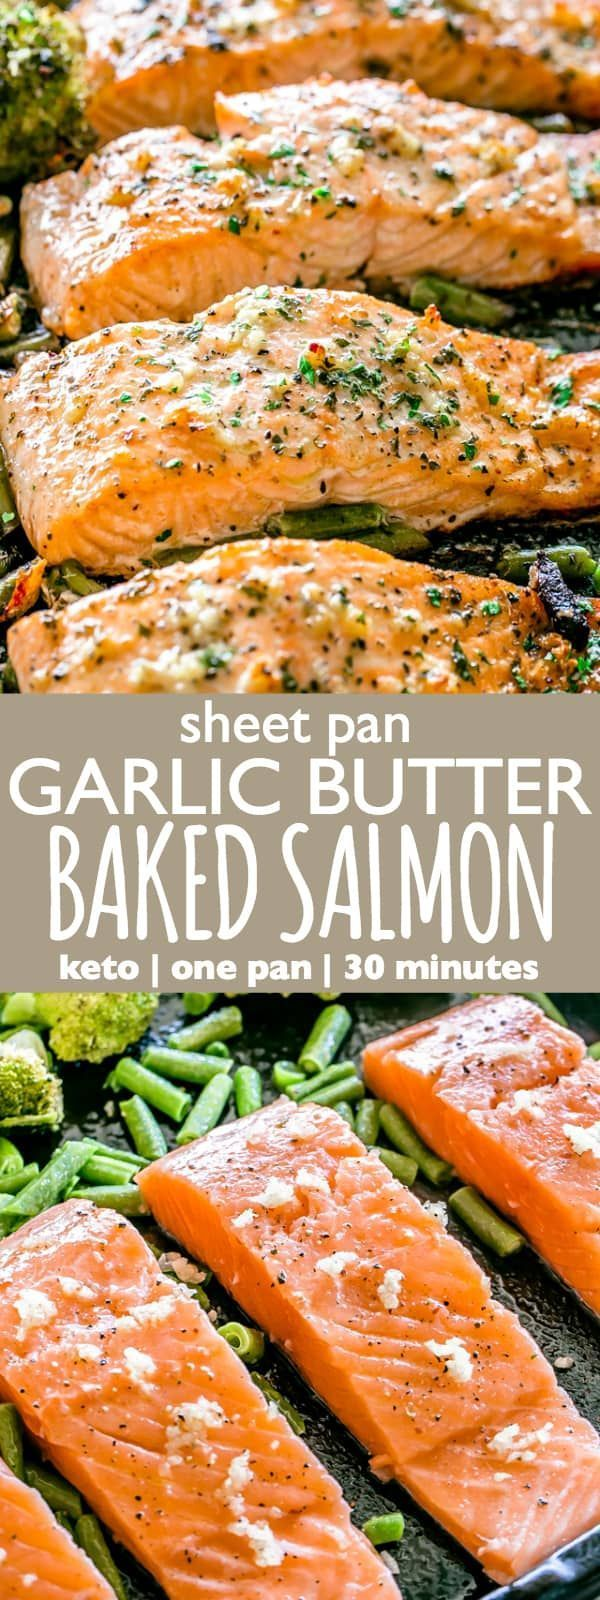 Photo of Garlic Butter Baked Salmon | An Easy & Delicious Salmon Recipe!